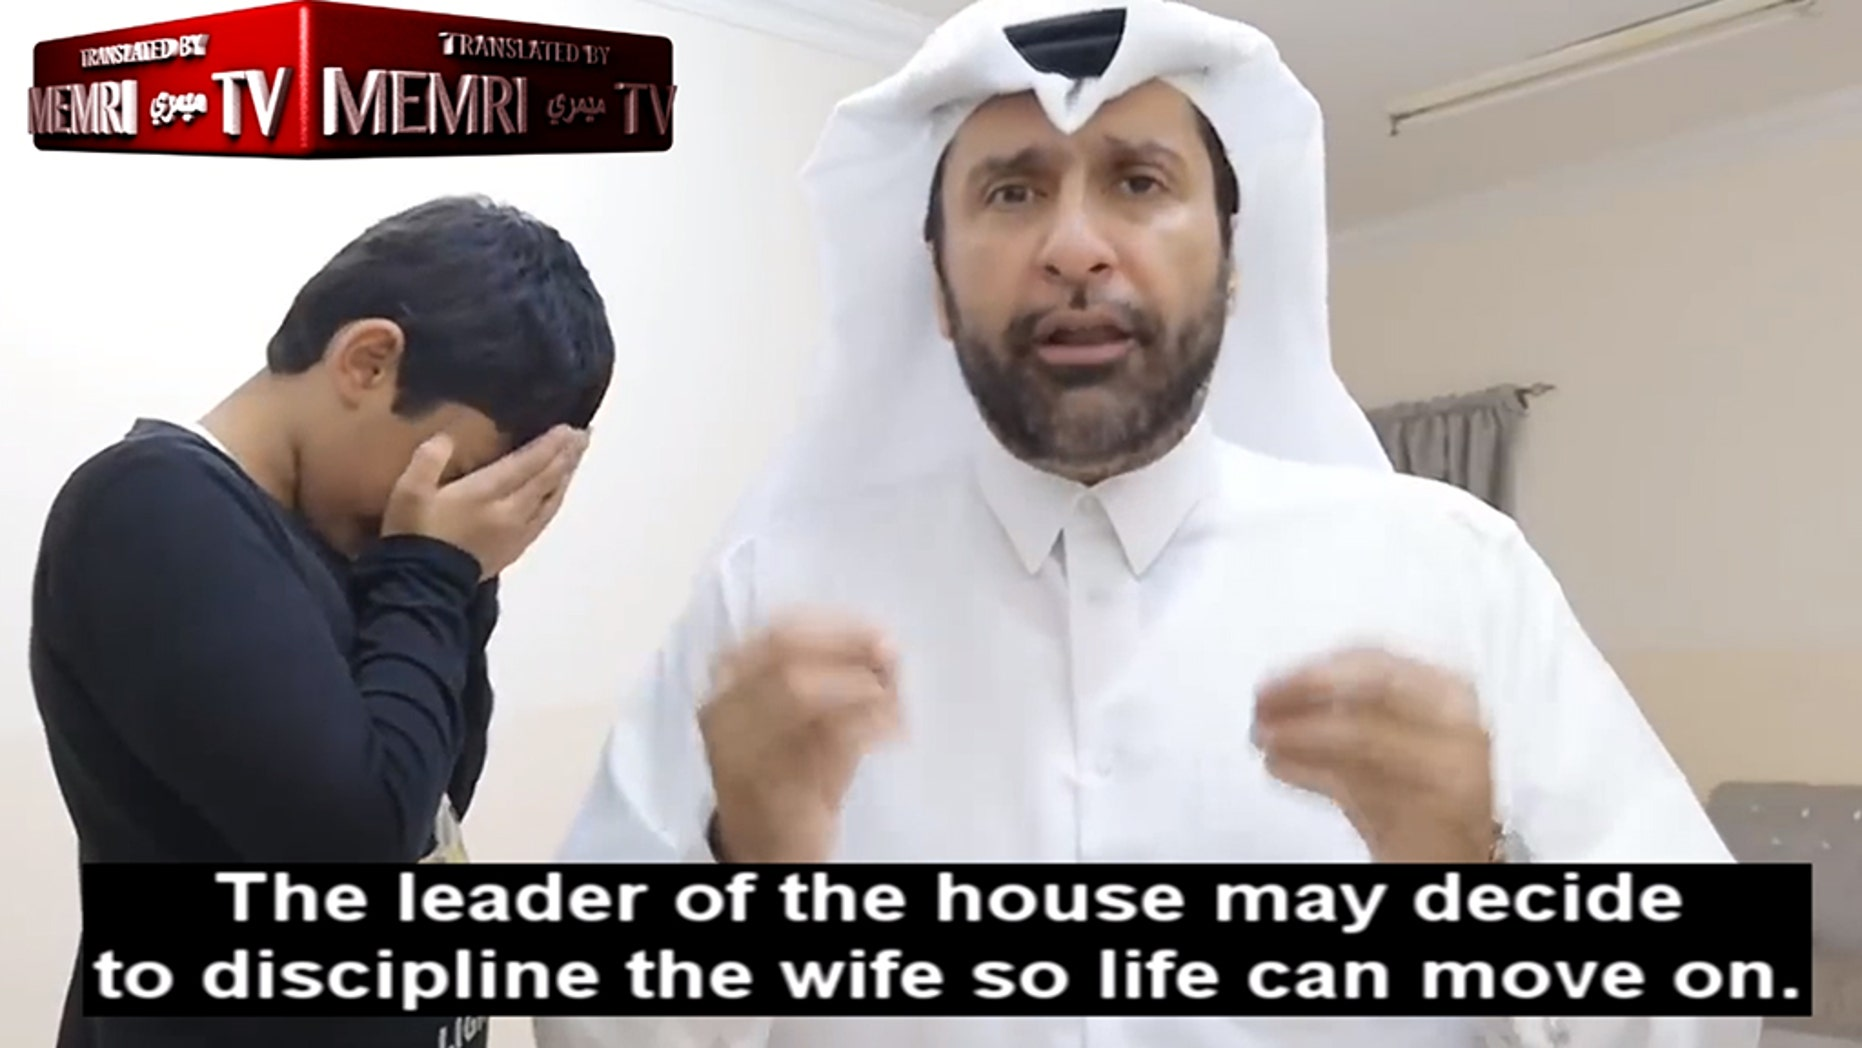 Westlake Legal Group wife-beating-2 Qatari academic seen in shocking video explaining how Muslim men should beat their wives The Sun Stephen Moyes fox-news/world/world-regions/middle-east fox-news/world/religion/islam fox-news/world/religion/controversies fnc/world fnc article 52ddb0ae-35dd-531d-a31d-c01771373a1c